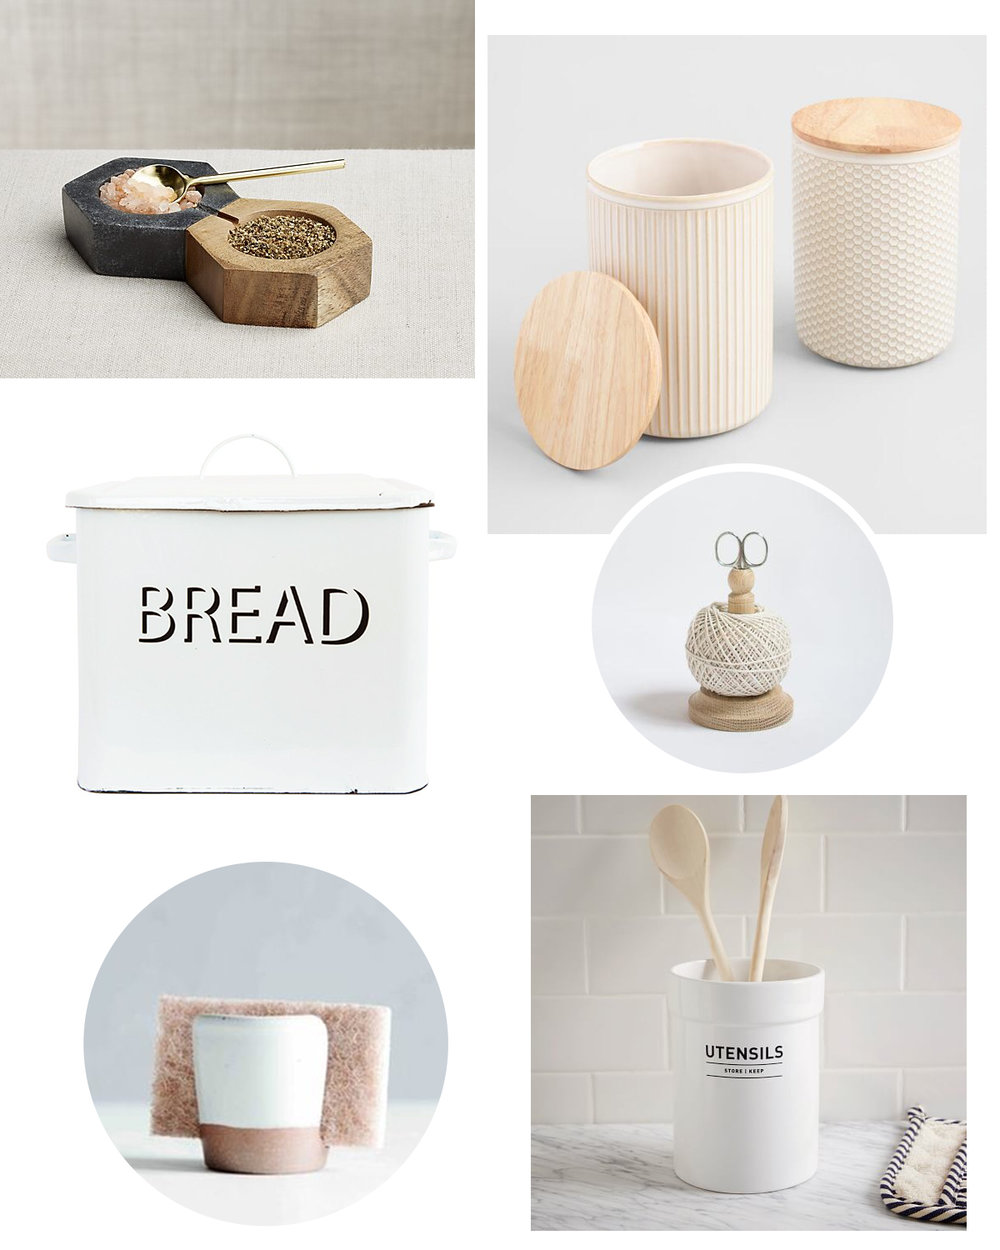 salt + pepper set  |  ceramic canisters  |  metal bread box  |  wood string tidy  |  sponge holder  |  utensil holder